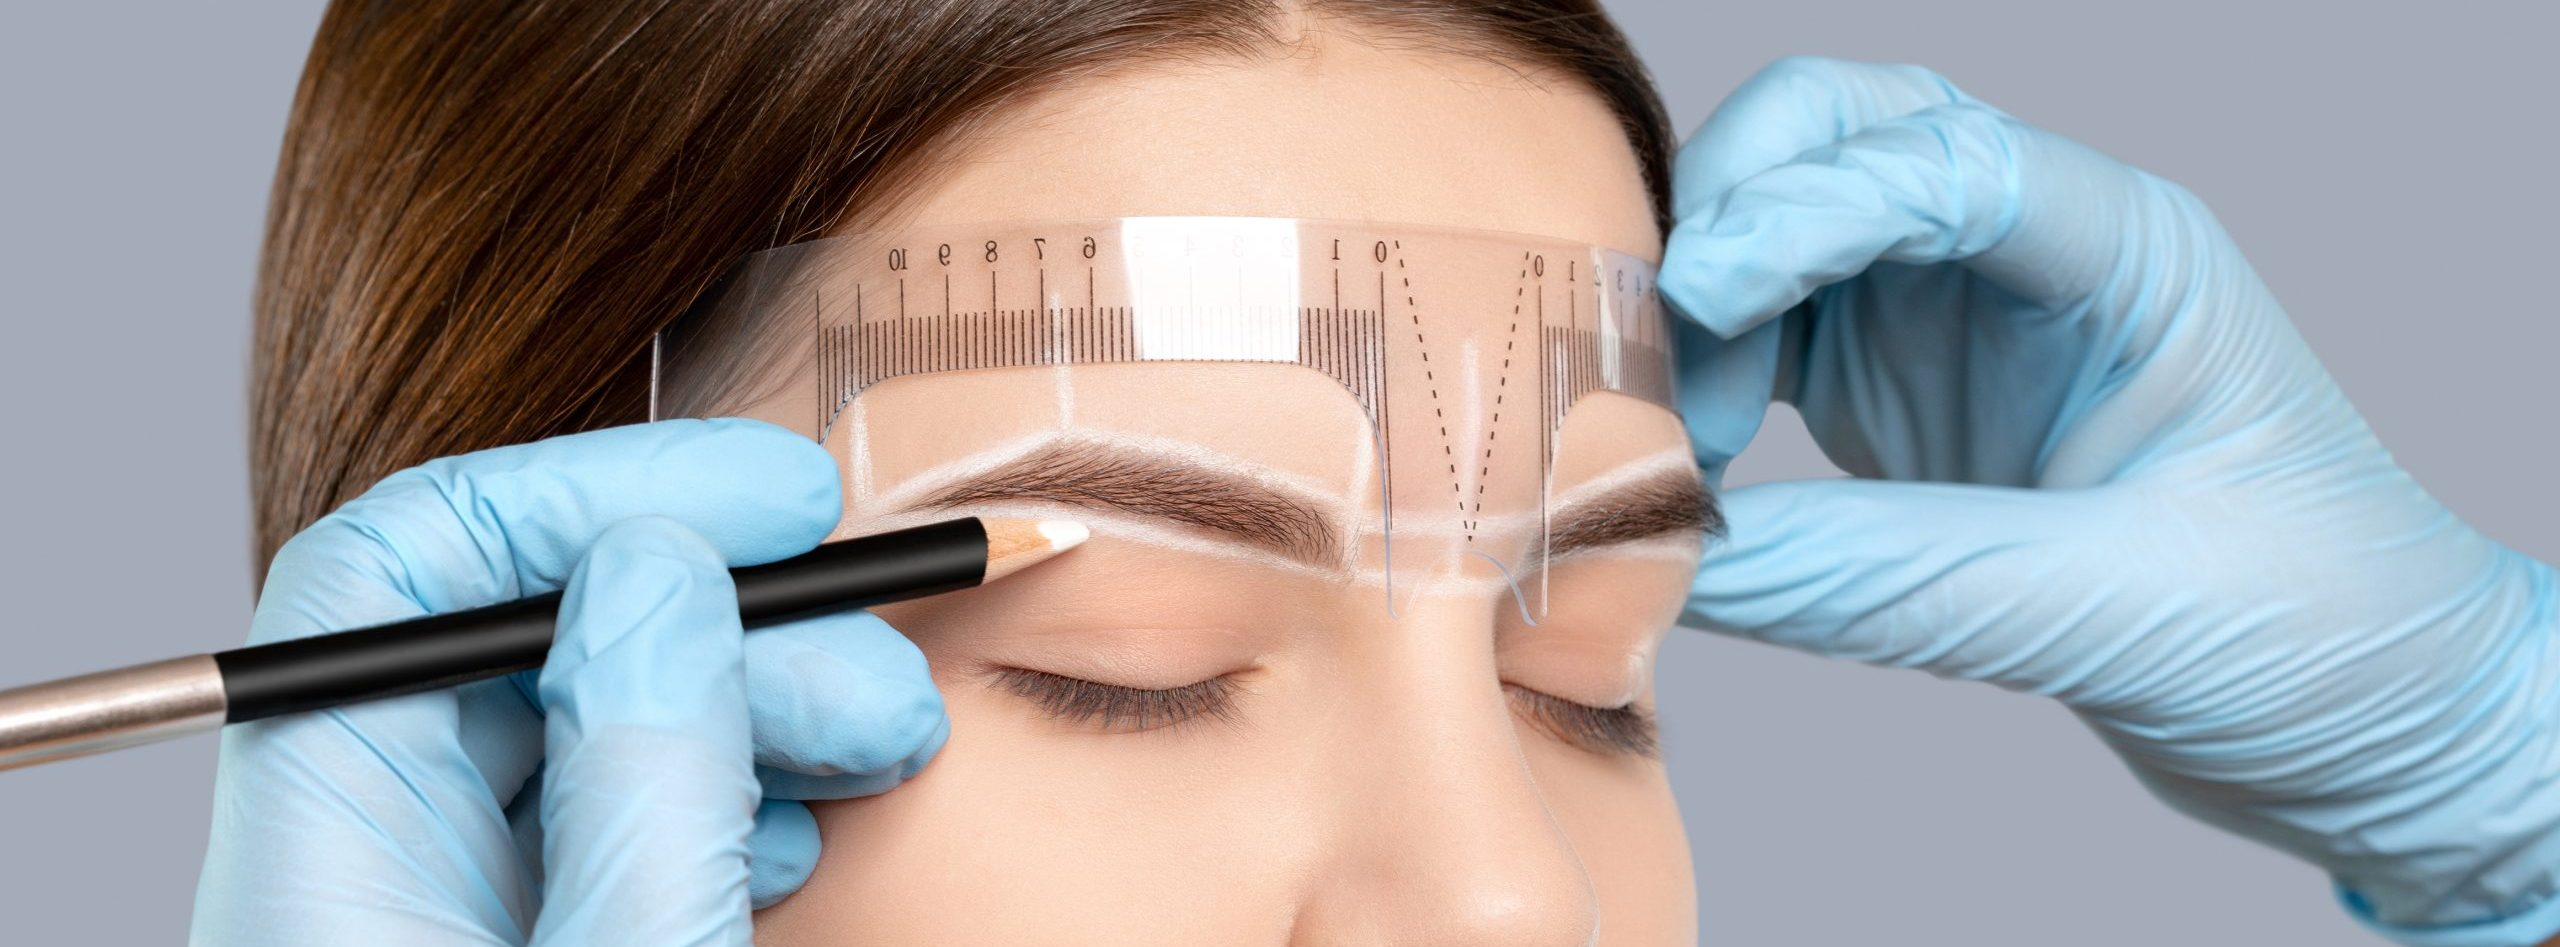 Permanent,Make-up,For,Eyebrows,Of,Beautiful,Woman,With,Thick,Brows